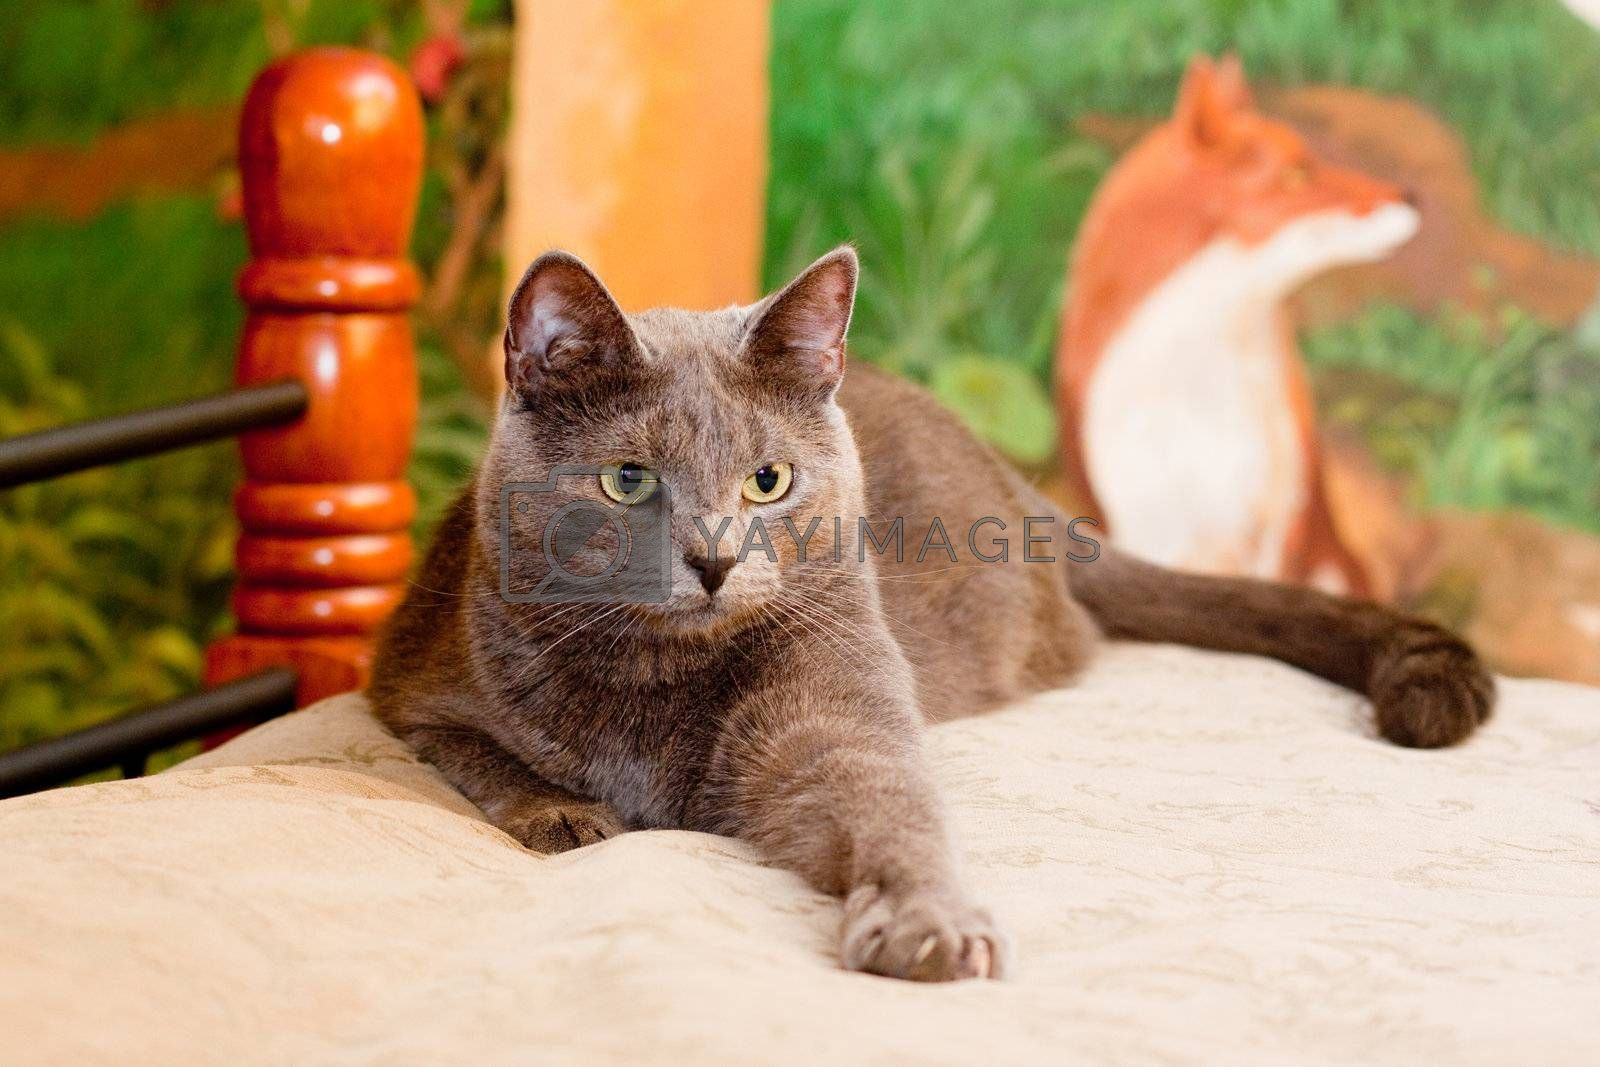 A gray cat lying on a bed in front of image